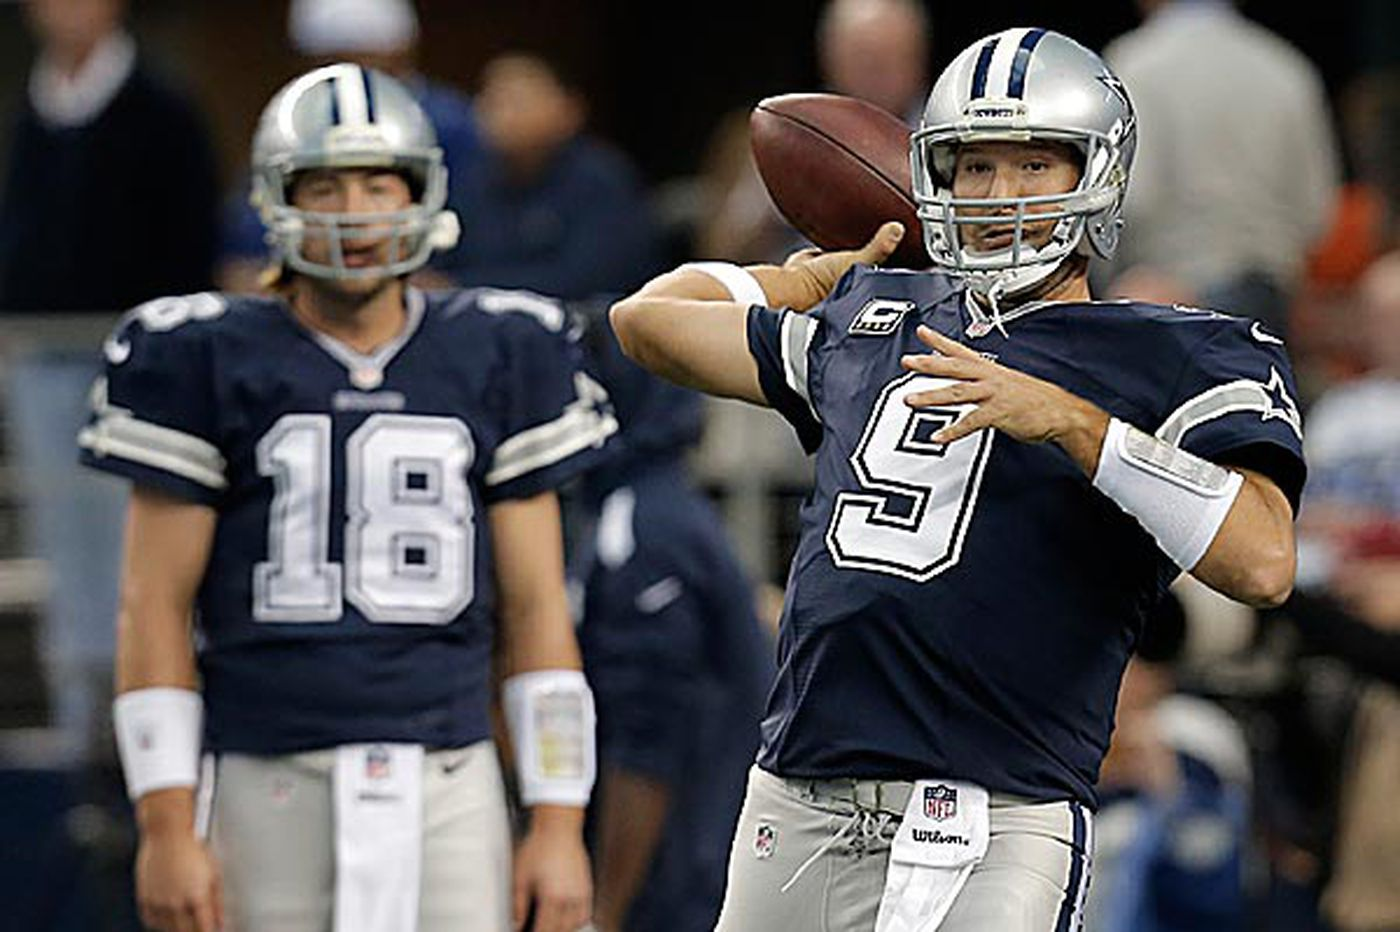 Cowboys' Tony Romo has back surgery, Orton to start vs. Eagles